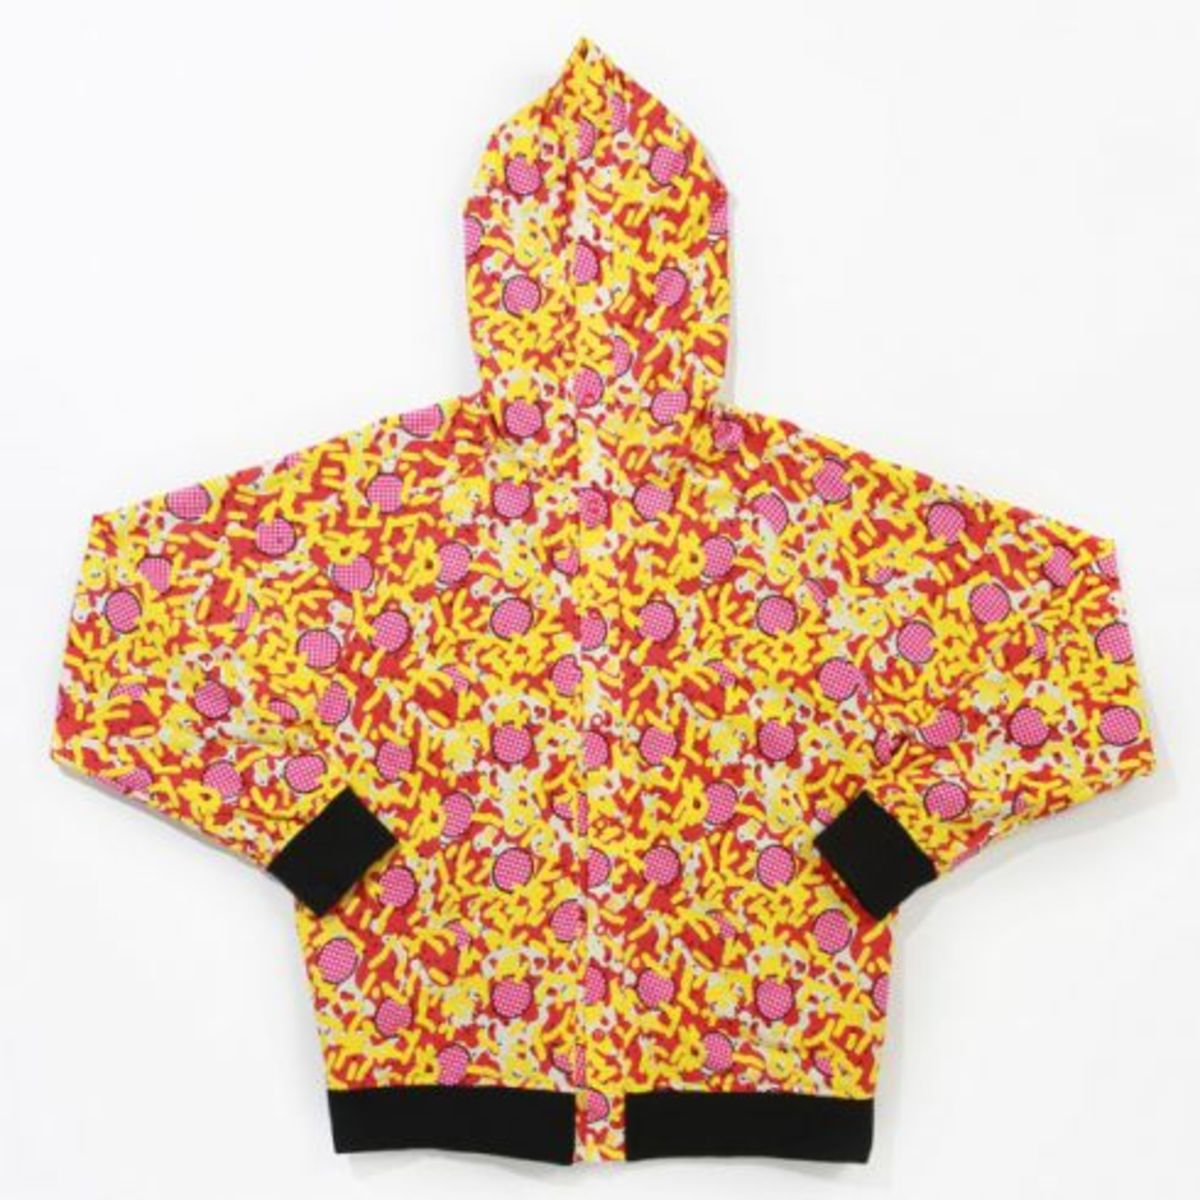 Perks And Mini (P.A.M.) x CLOT - Pizza Party Jacket (Update) - 1